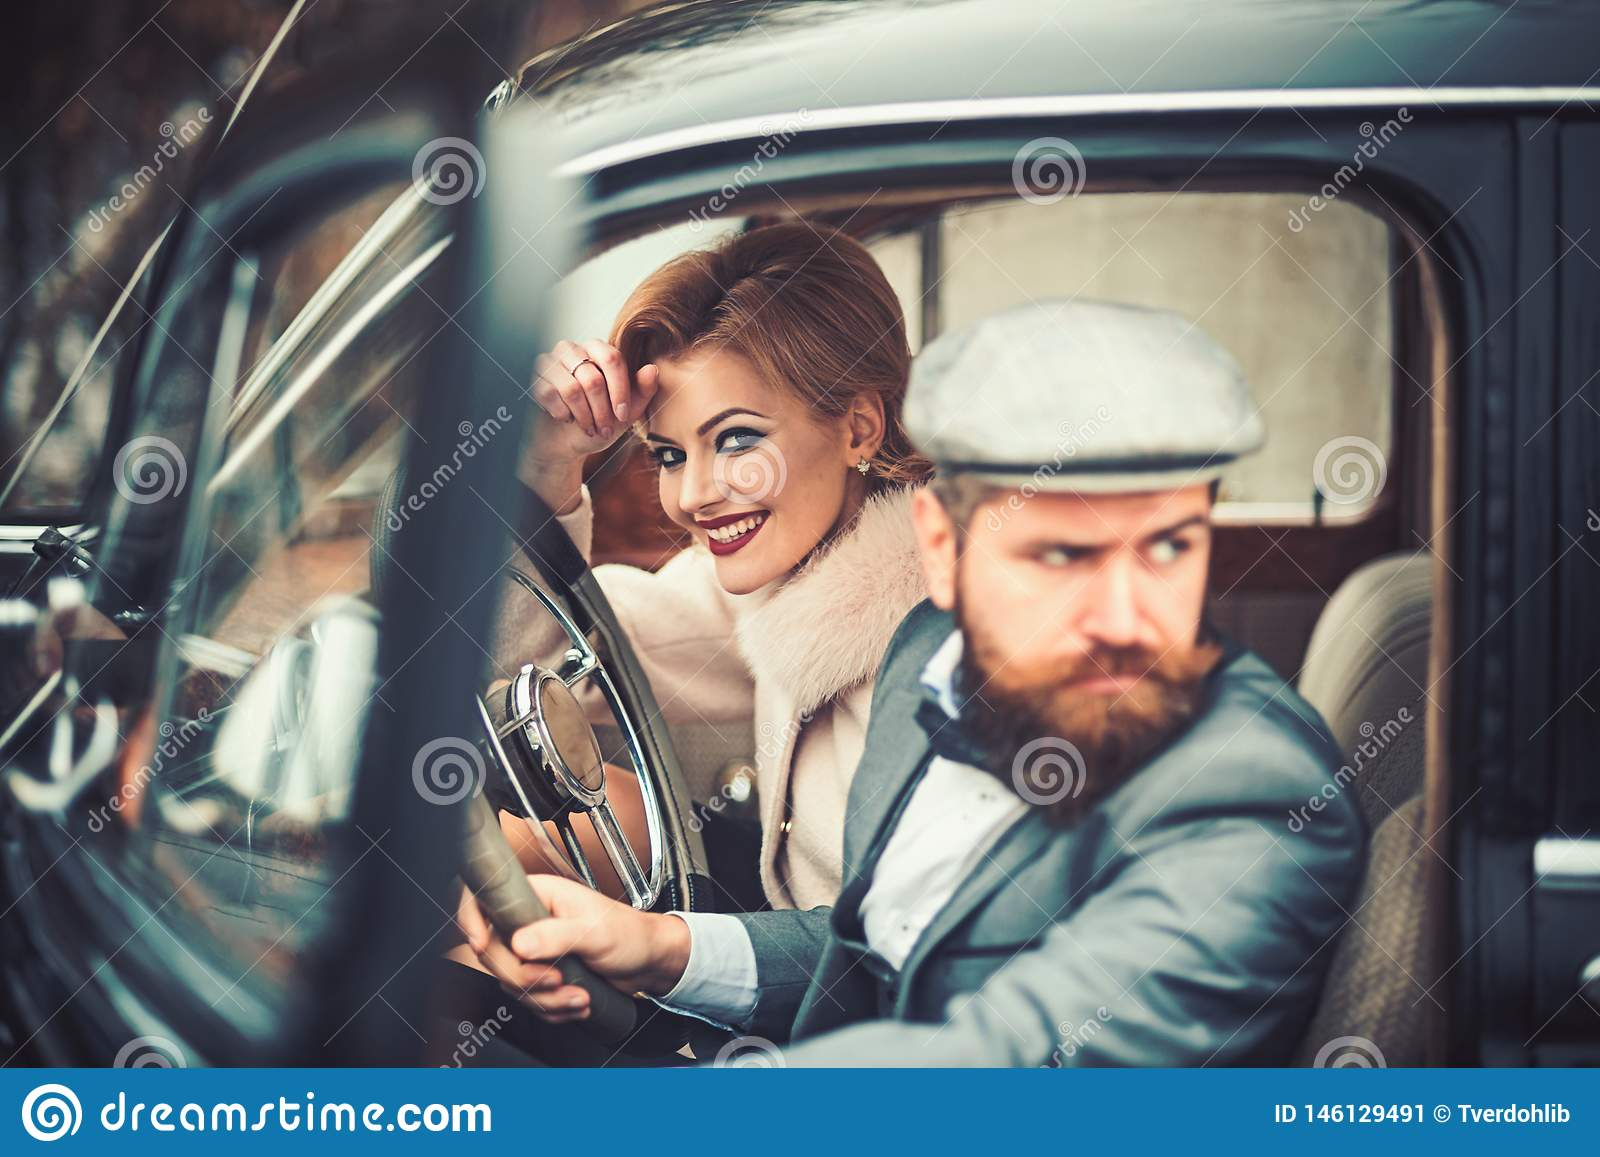 Escort of girl by security. escort concept with bearded driver and luxury girl in retro car.